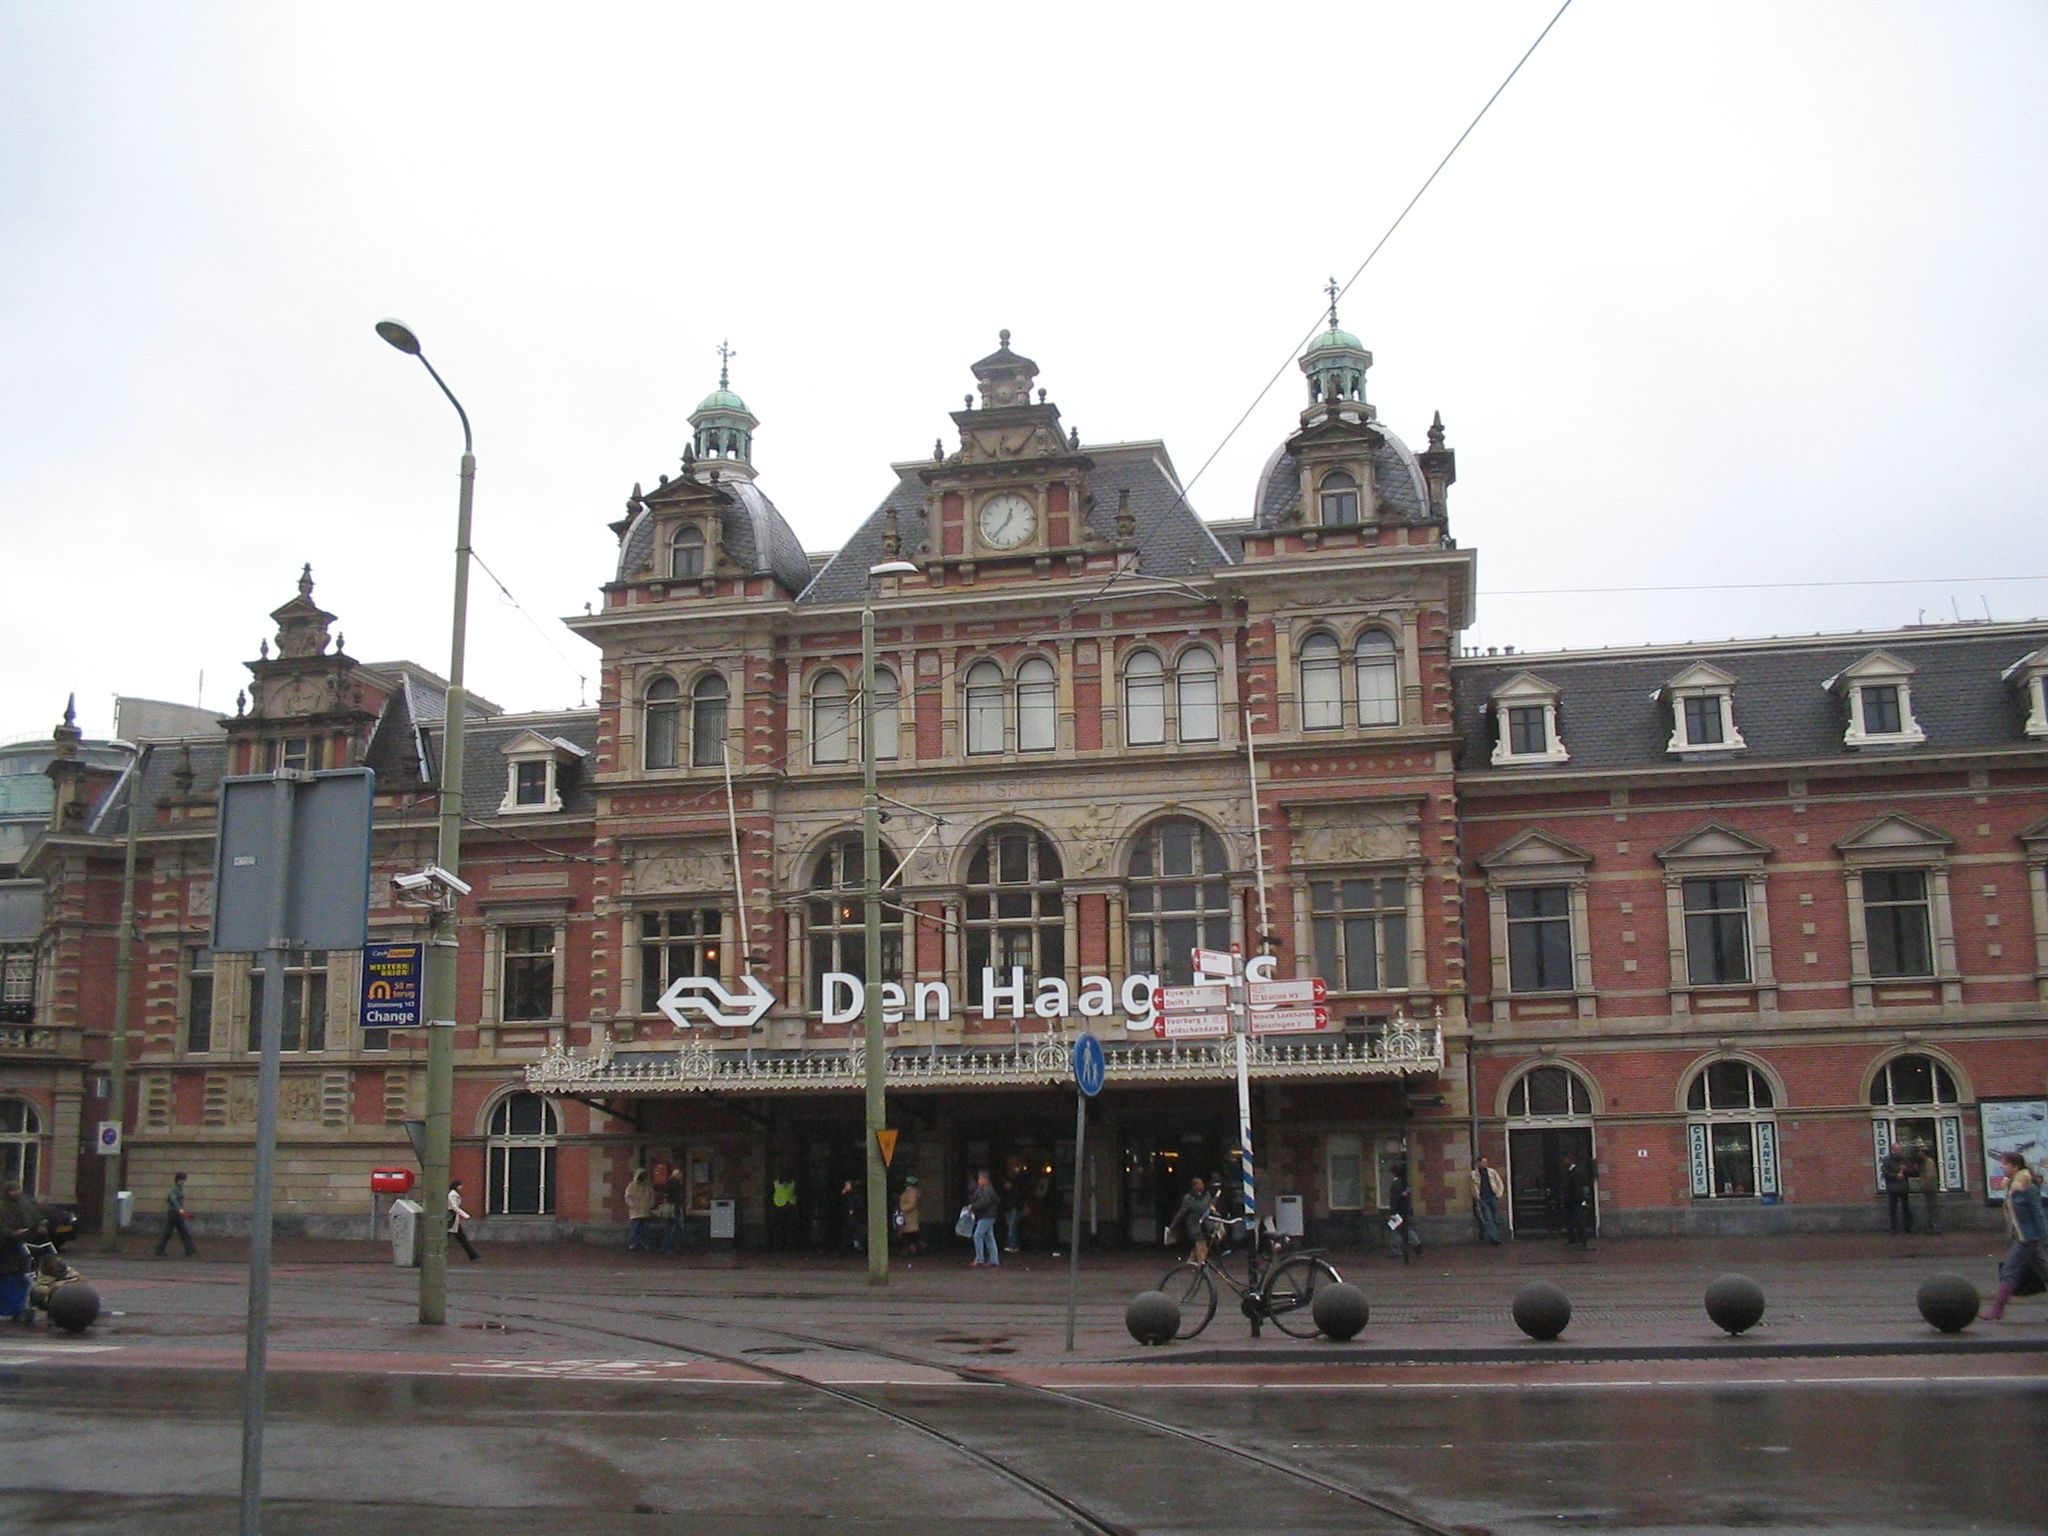 The Hague Holland, Train station and Netherlands